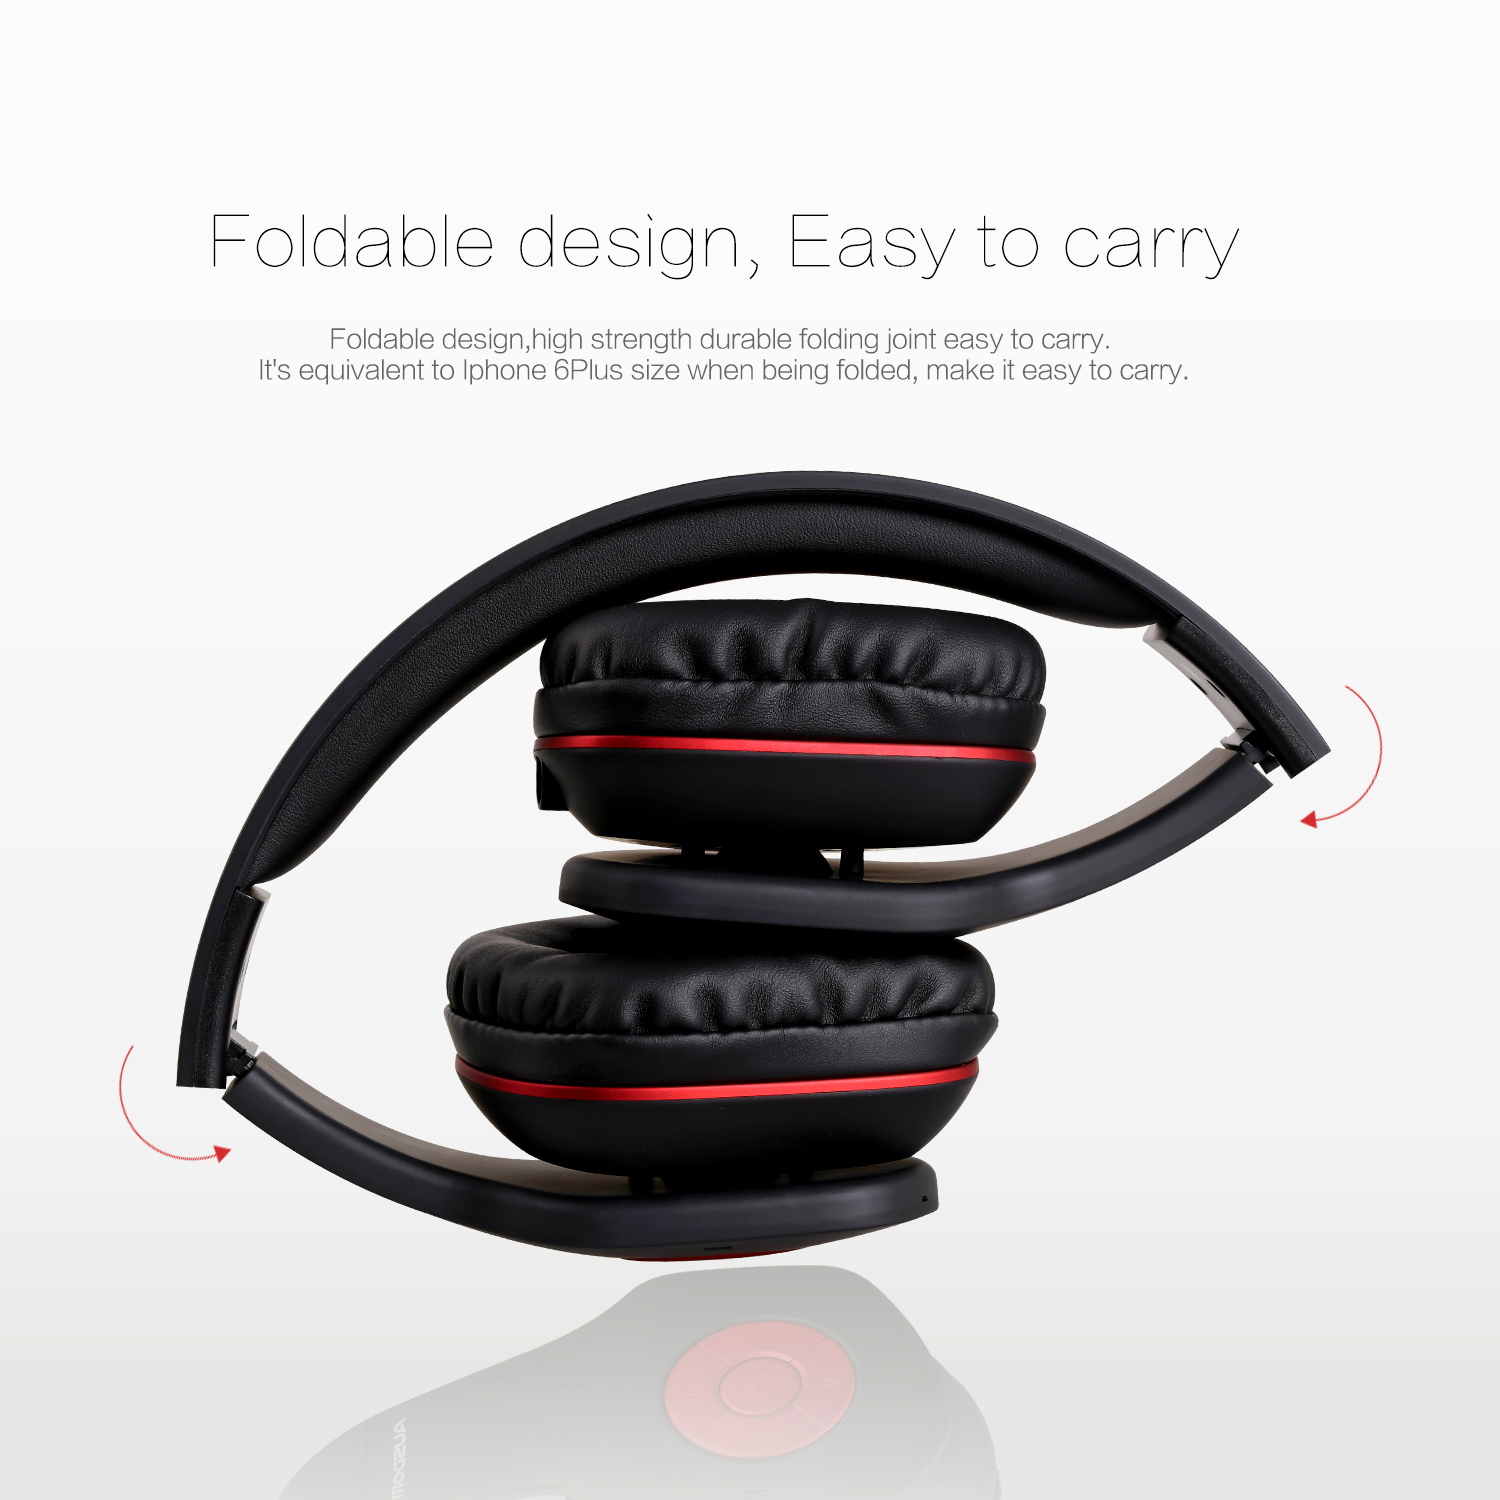 AUSDOM AH862 Wireless&Wired Business headphone Bluetooth 4.1 3.5mm AUX-IN hands-free headset Durable strong power 20h talk time 18h play time up to 1000h standby time HSP,HFP,A2DP,AVRCP 2.40GHz-2.48GH